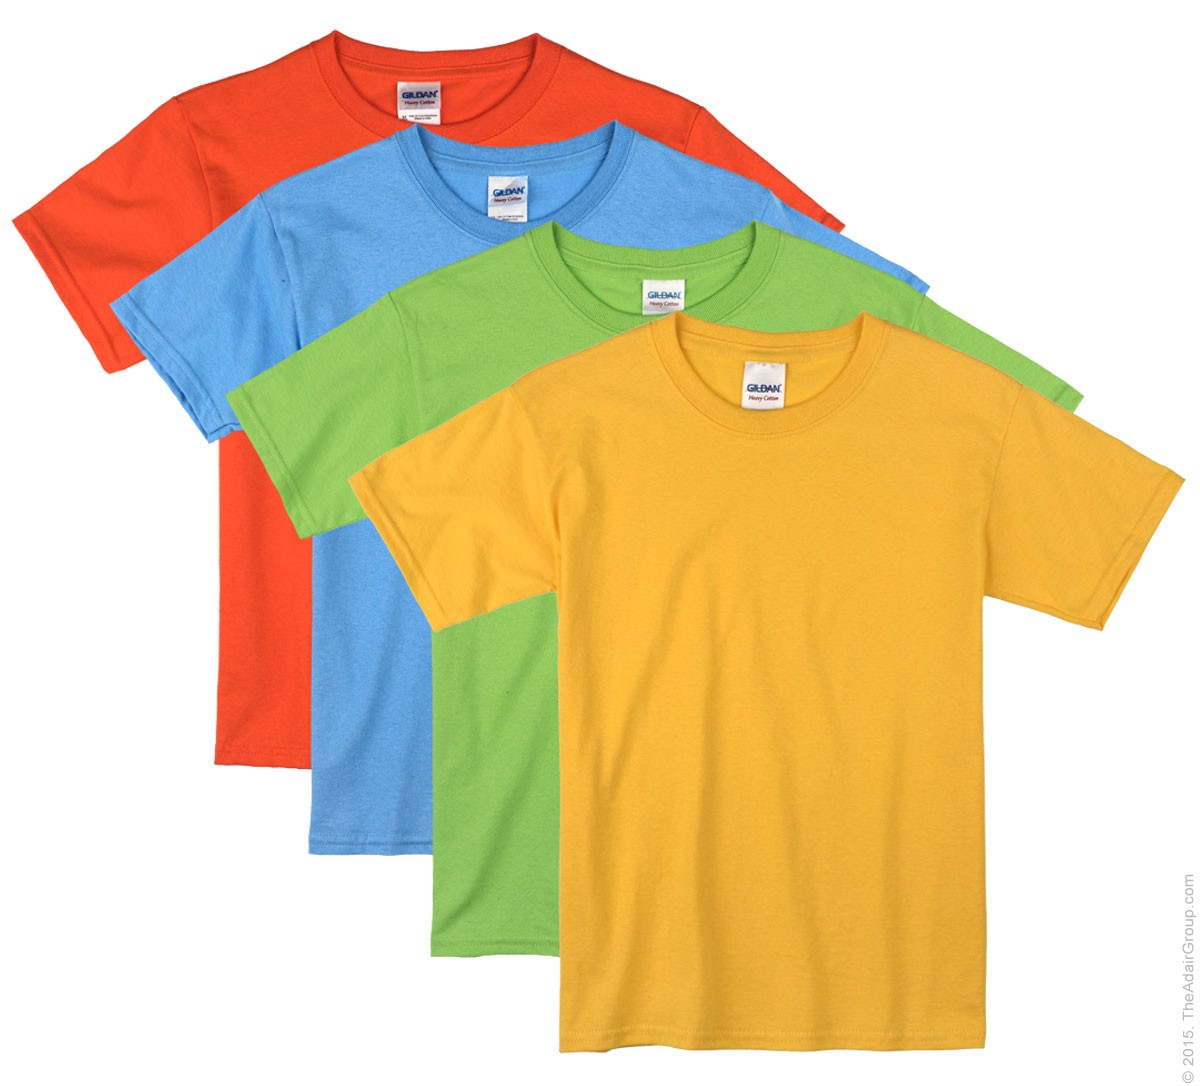 a391b9c253 Bright Color Kids T-Shirts | The Adair Group